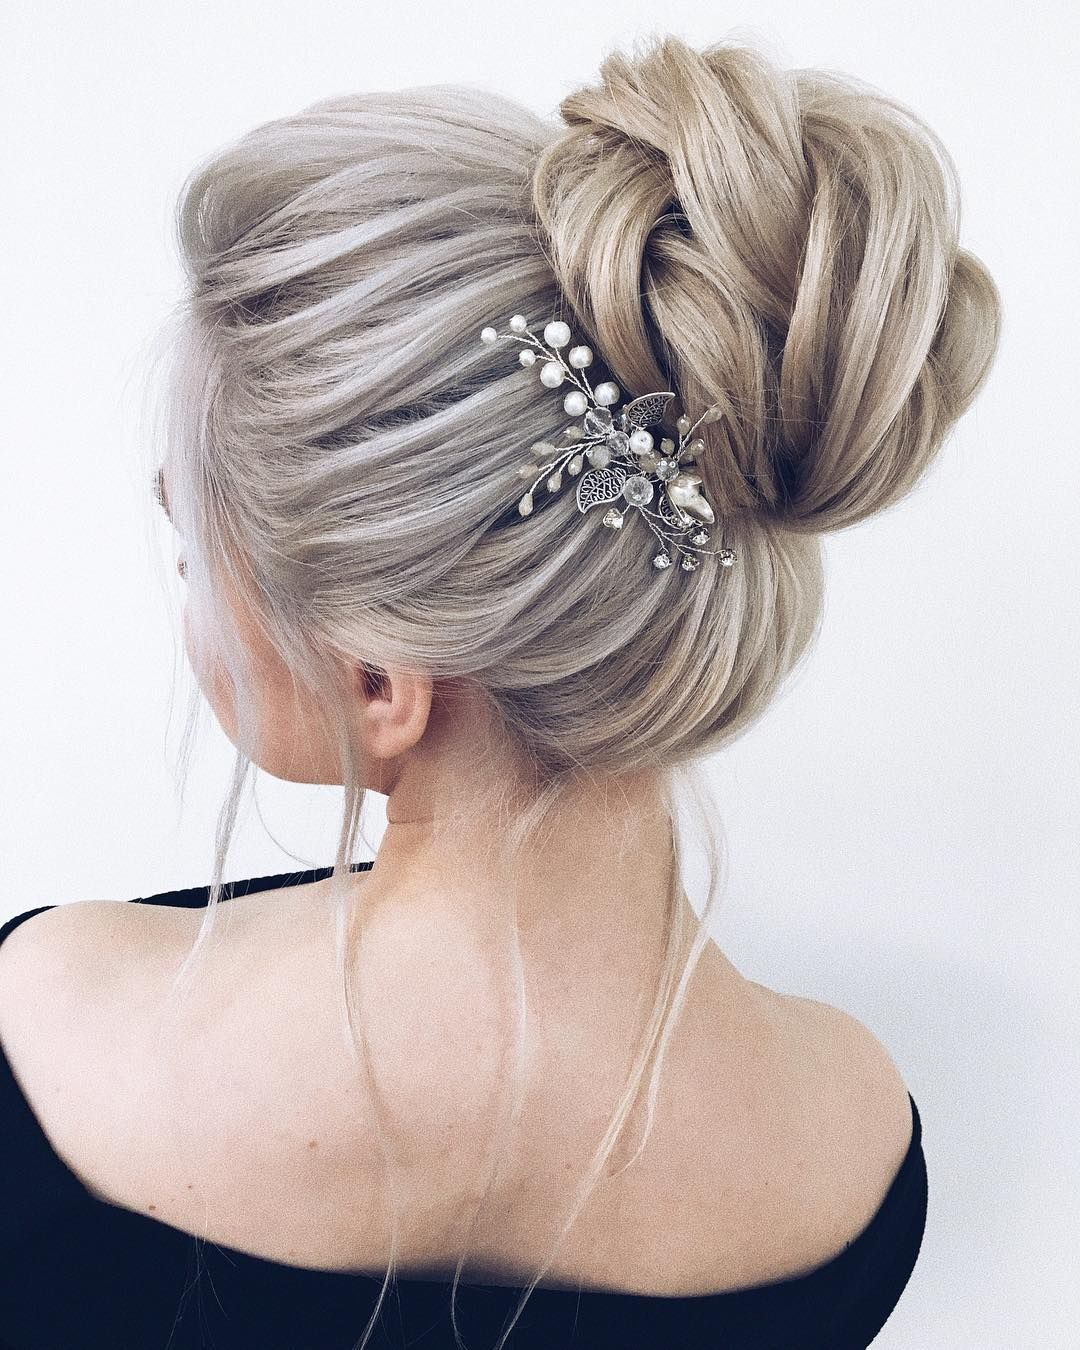 Gorgeous Updo Hairstyle That You'll Love To Try